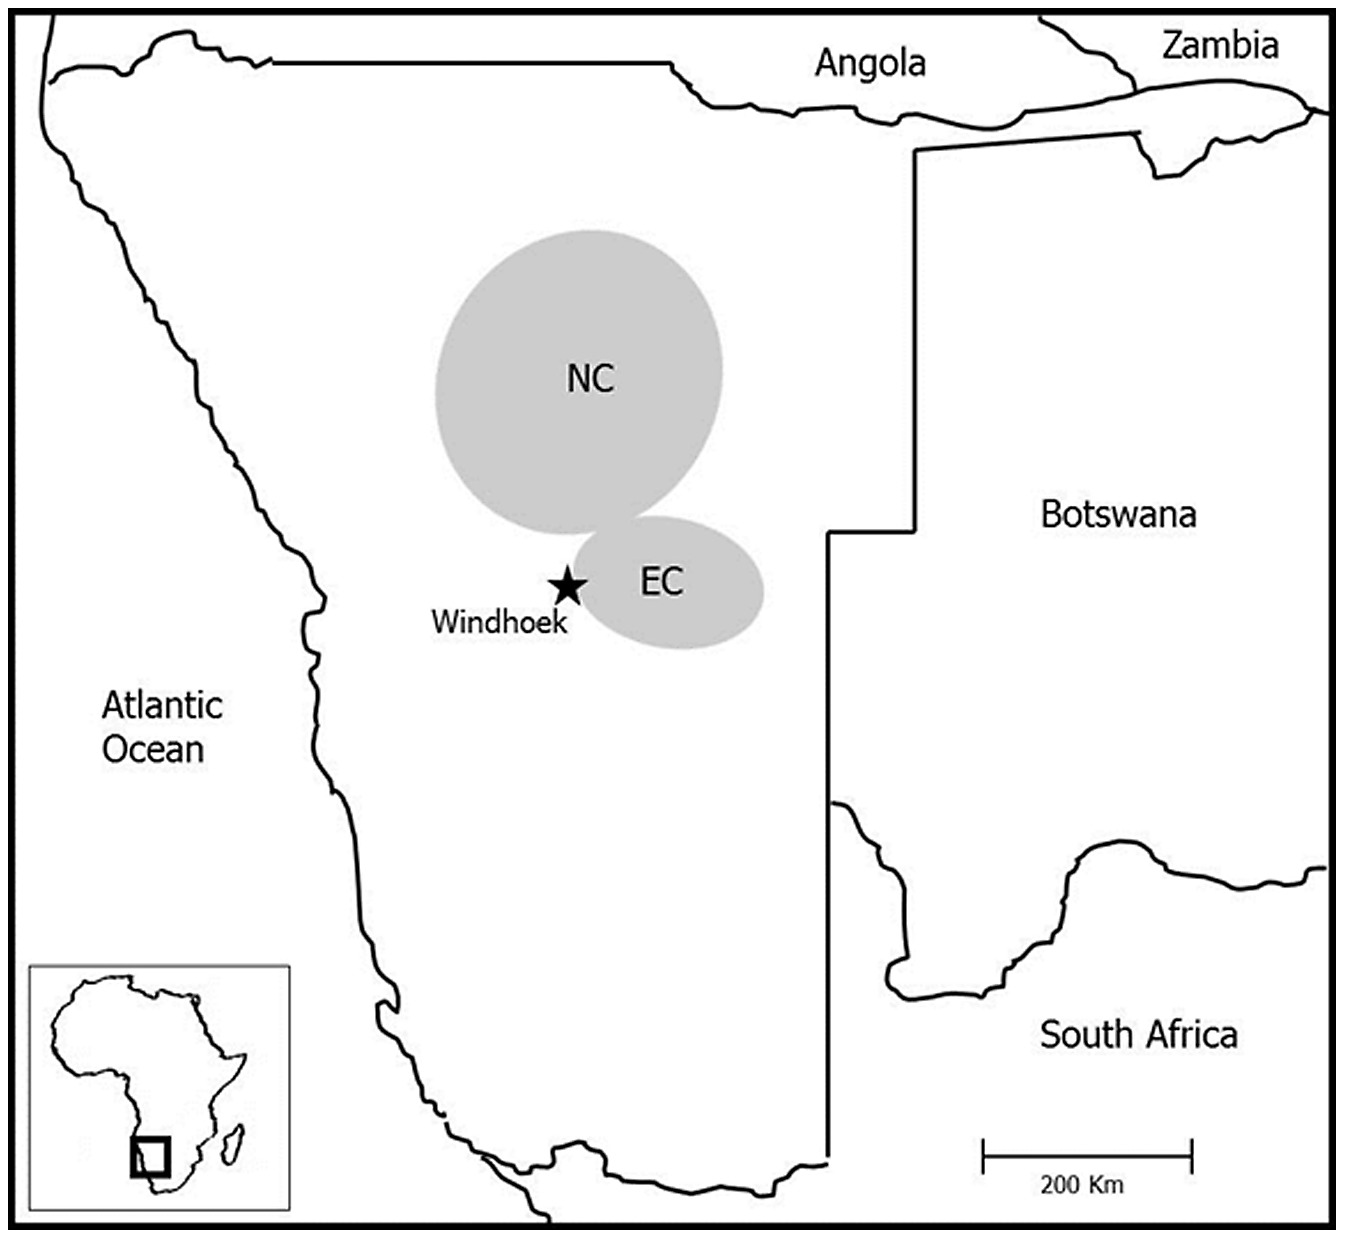 Schematic map showing the location (shaded) of the two study areas